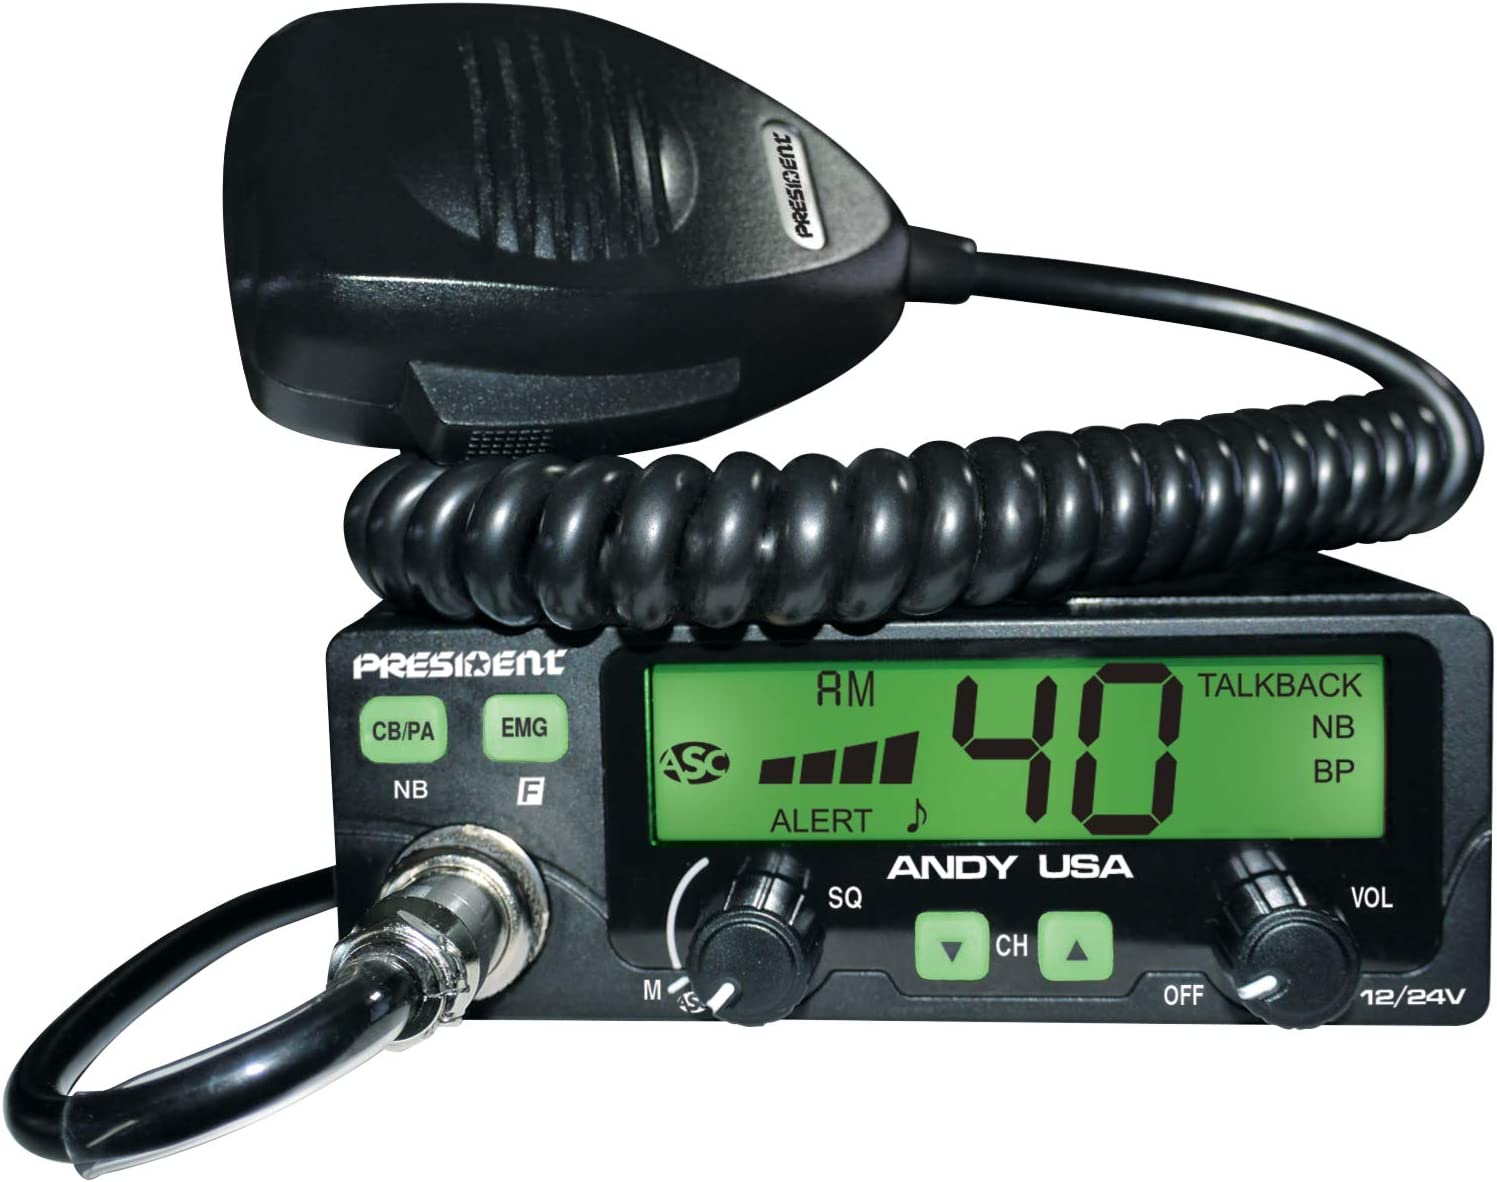 President Andy 12//24v CB Radio w//7 Color LCD Display Small Form Factor Compact